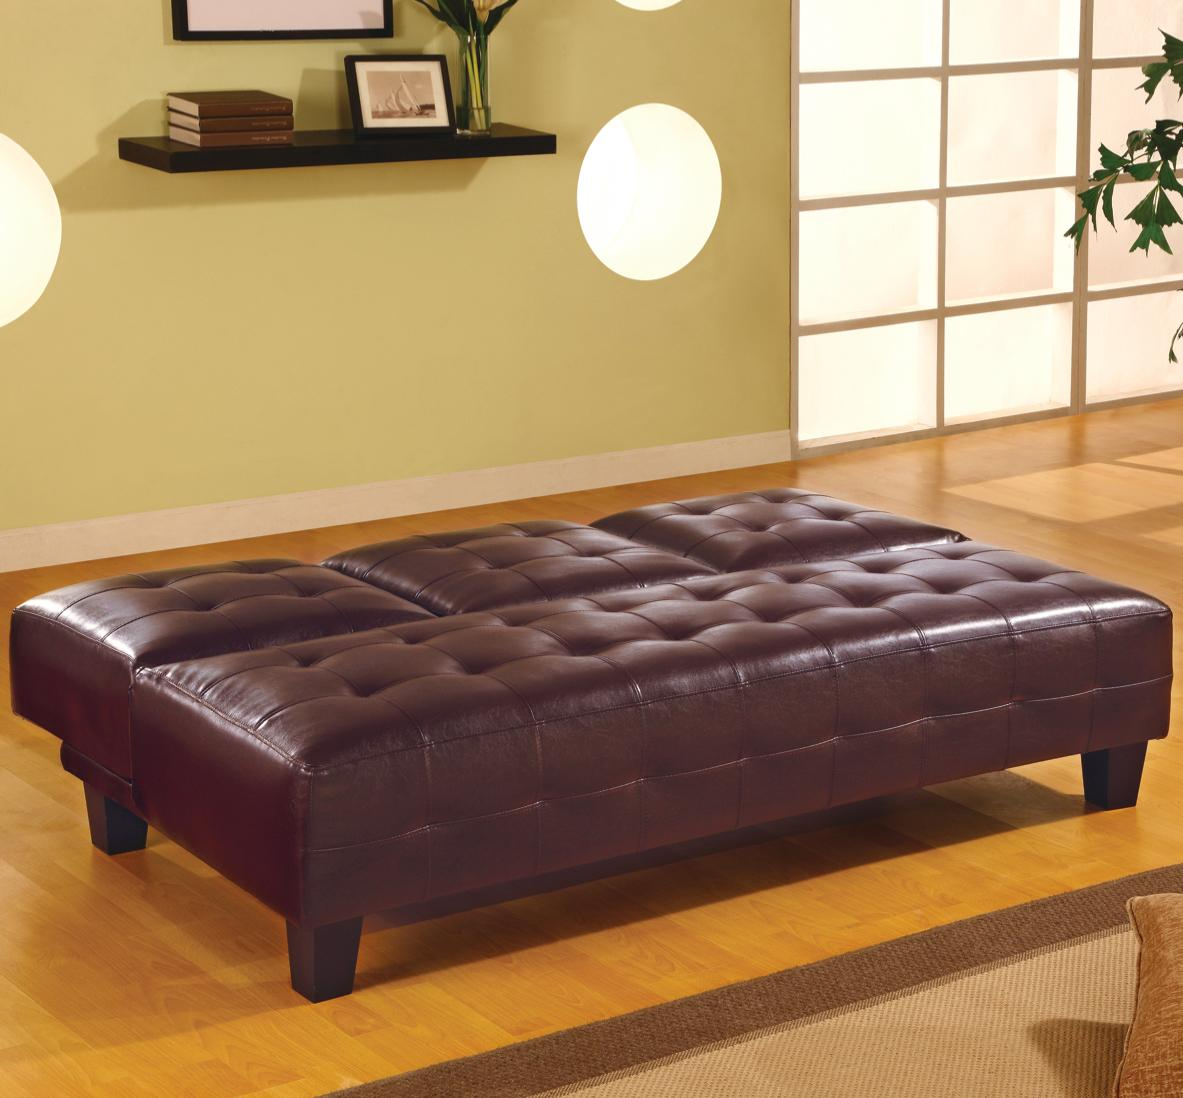 Brown Armless Convertible Sofa Bed with Drop Down Console in down position